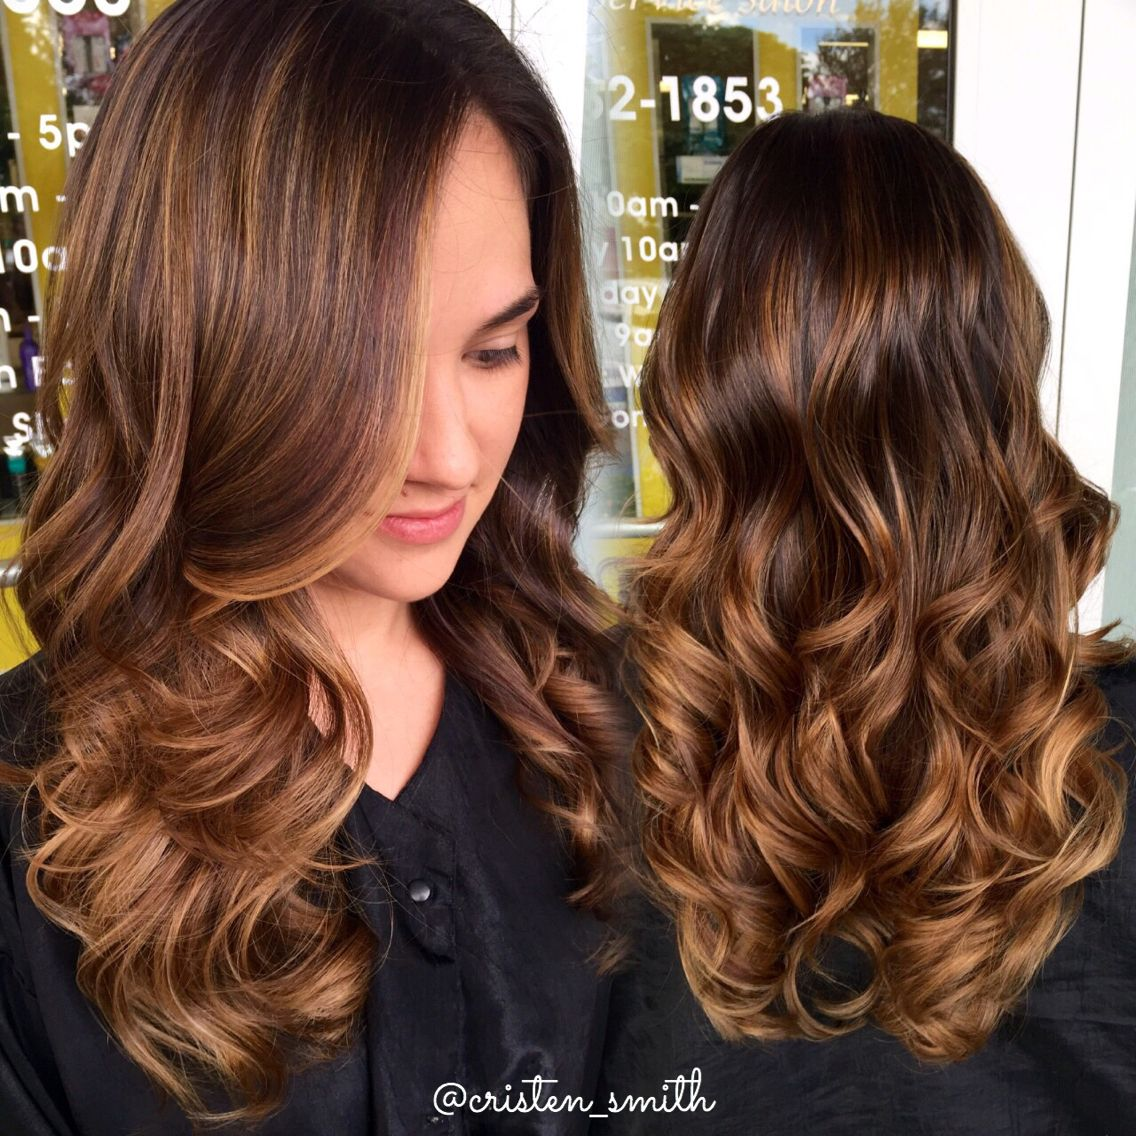 caramel honey highlights hair in 2019 hair balayage. Black Bedroom Furniture Sets. Home Design Ideas